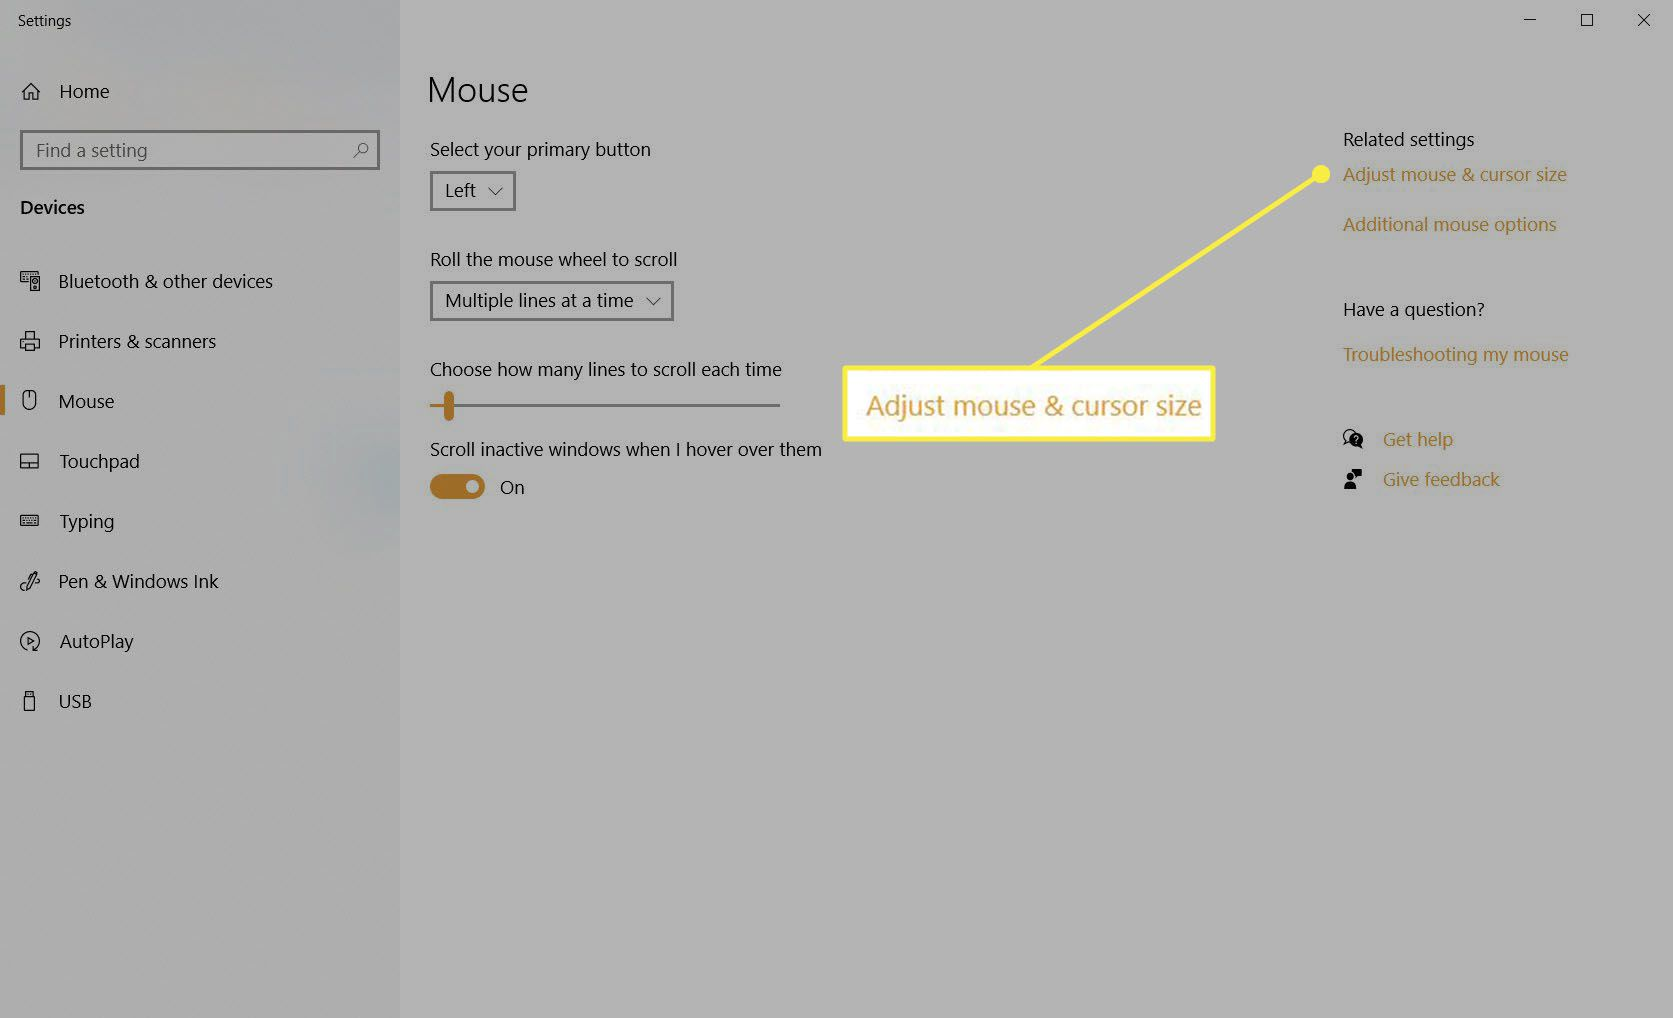 Adjust mouse and cursor size